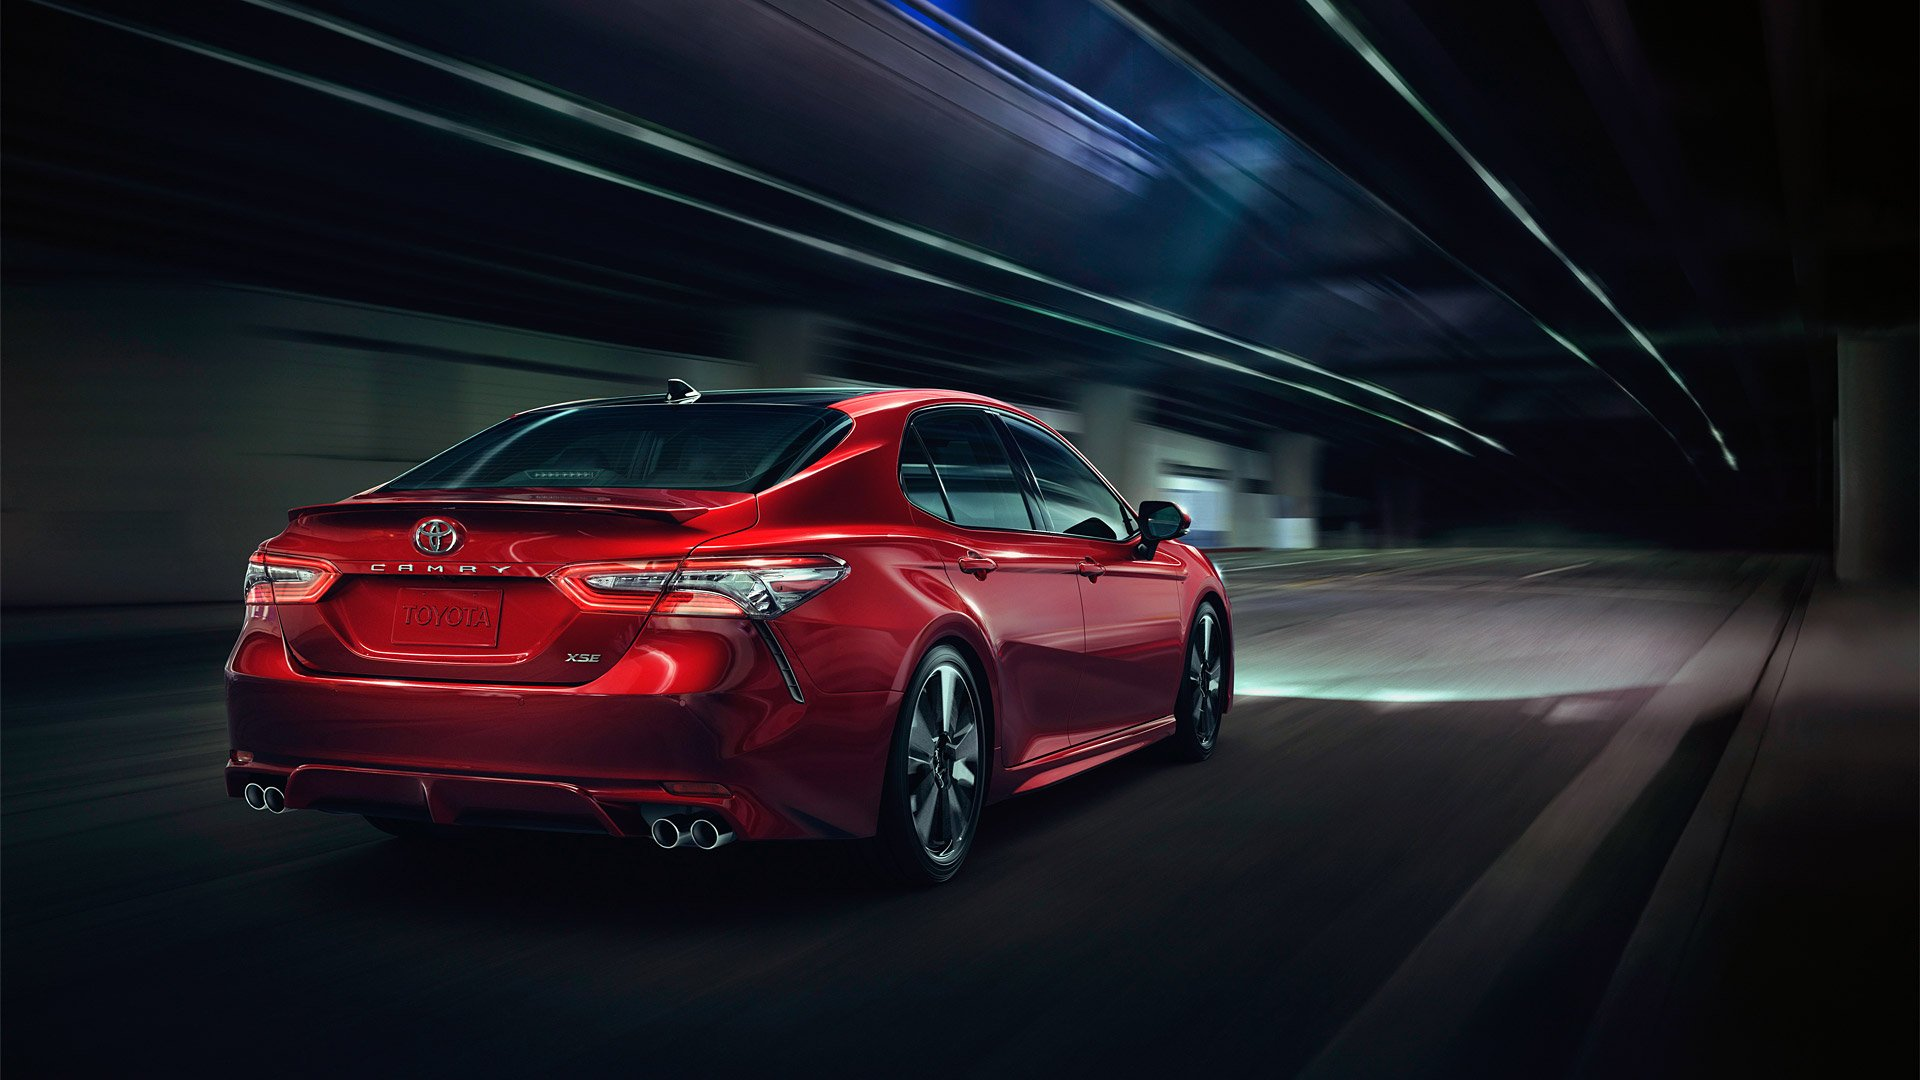 2018 Toyota Camry XSE Wallpapers HD Images   WSupercars 1920x1080